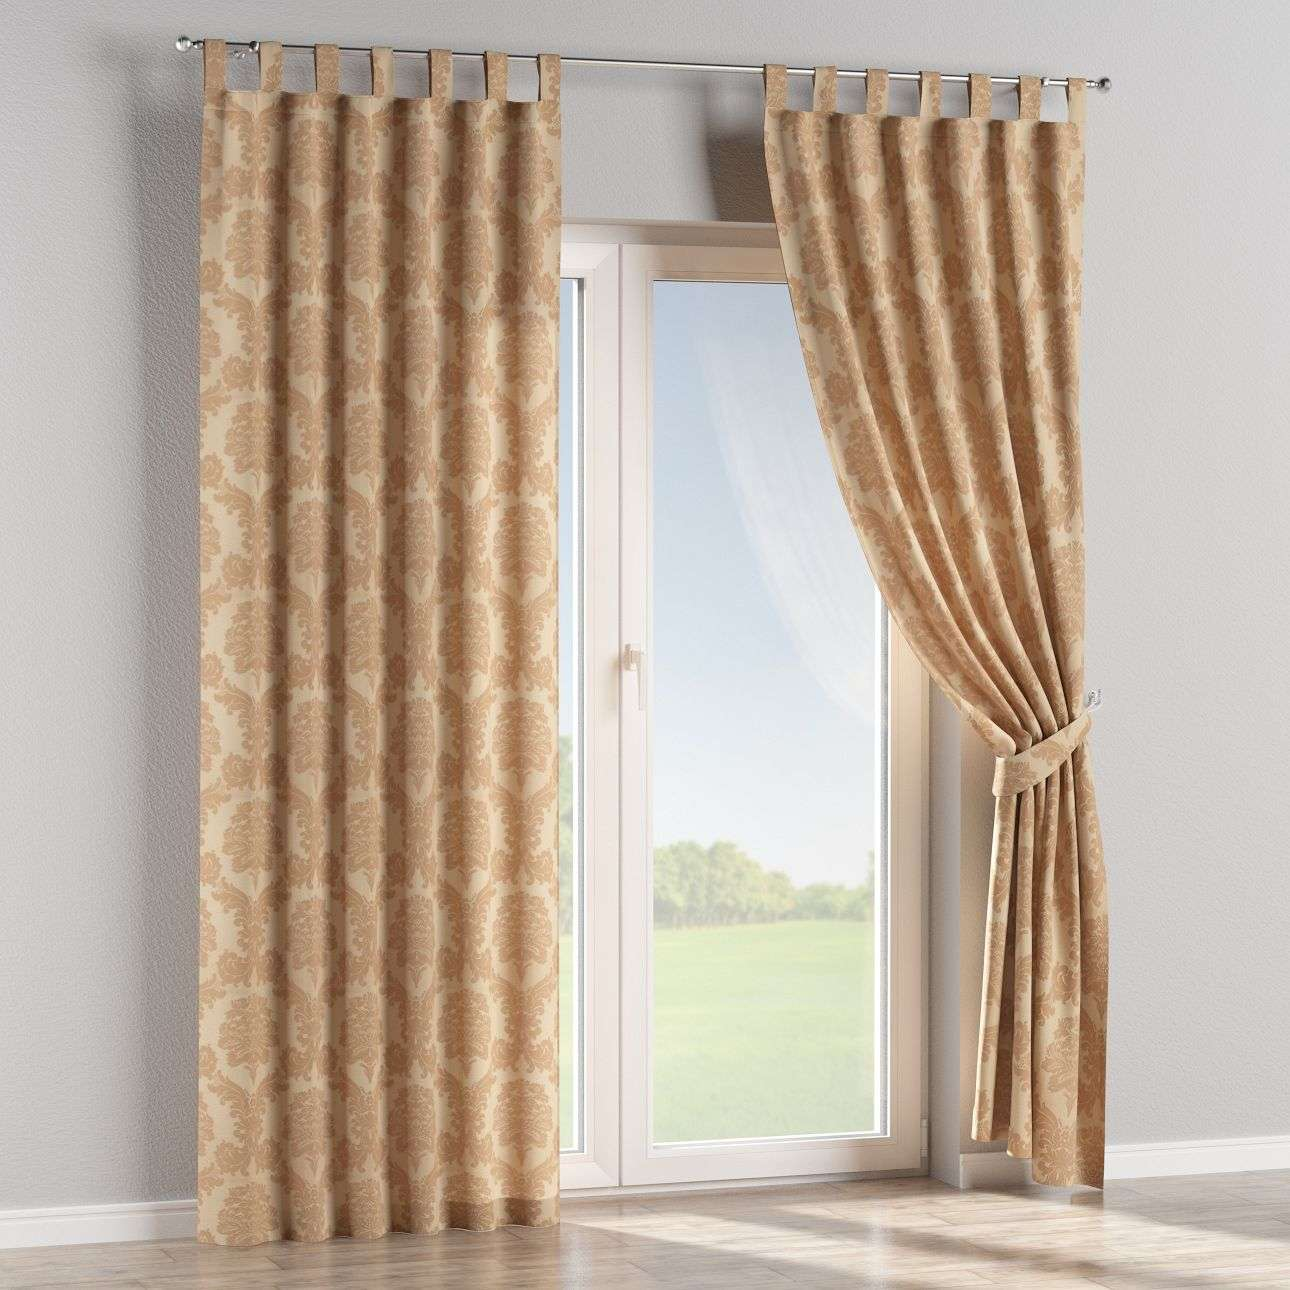 Tab top curtains 130 x 260 cm (51 x 102 inch) in collection Damasco, fabric: 613-04